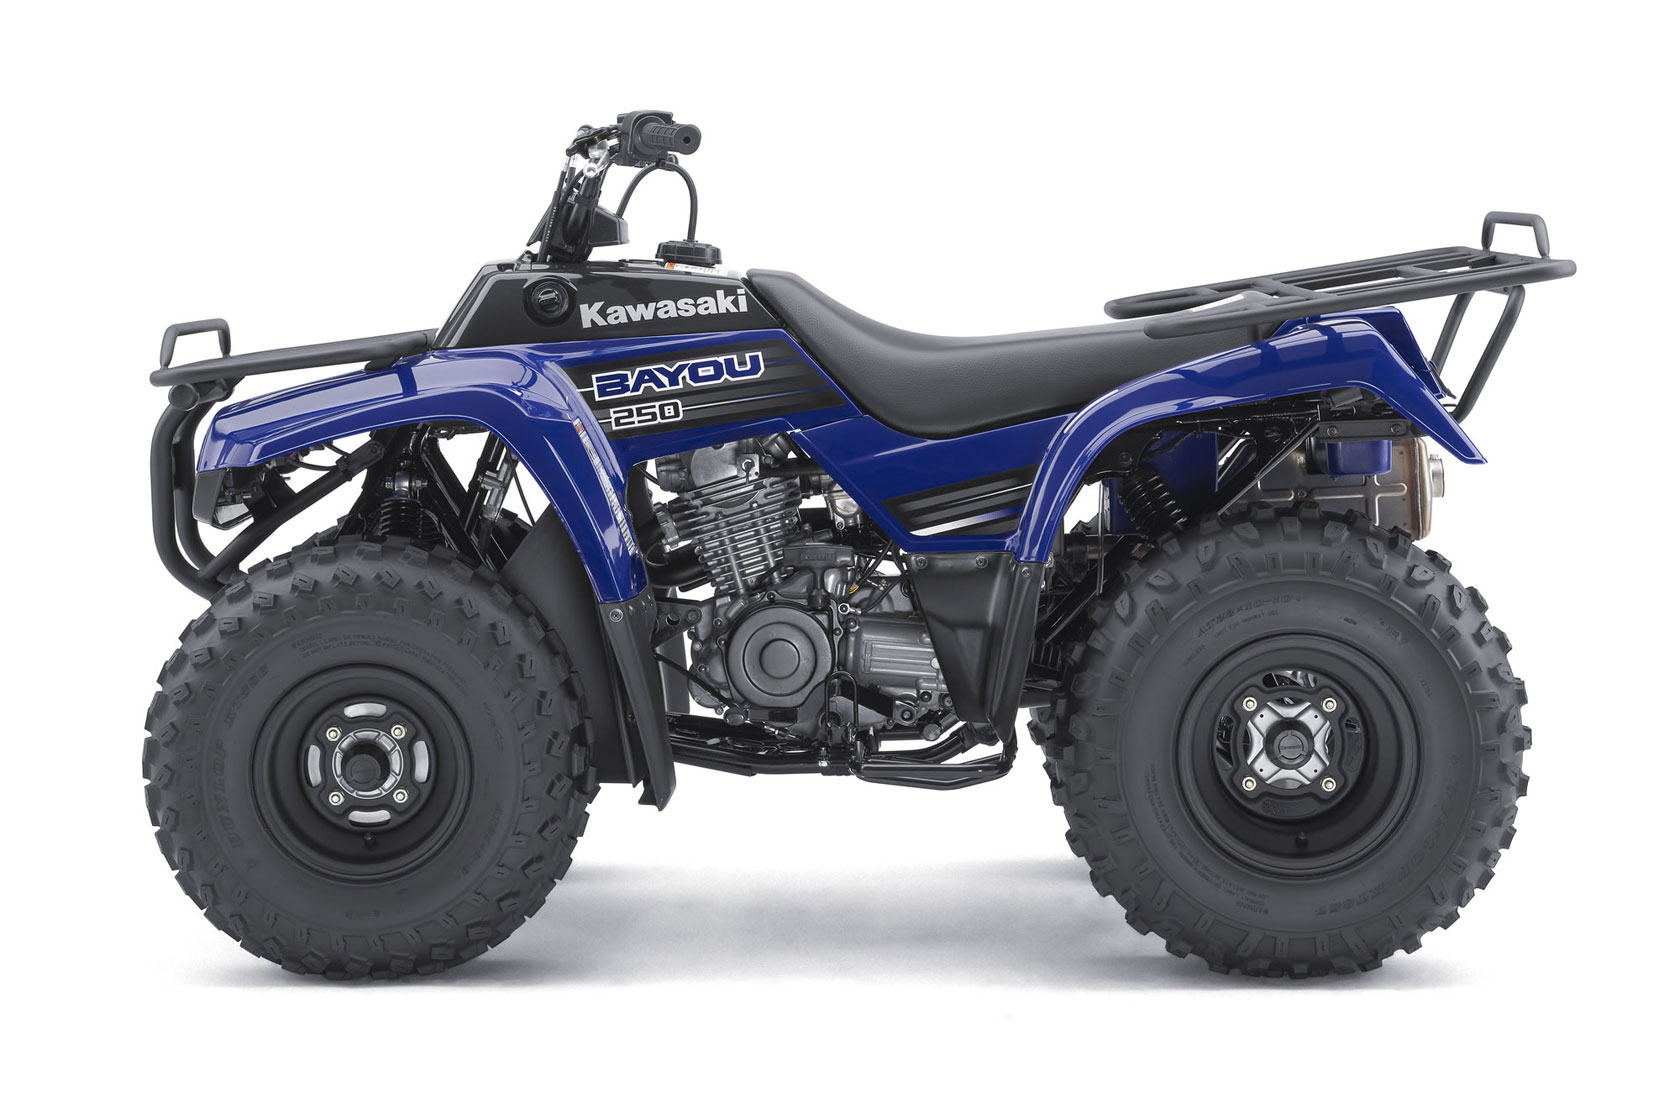 hight resolution of kawasaki bayou 250 specs 2010 2011 autoevolutionkawasaki 250 bayou atv wiring diagram 13